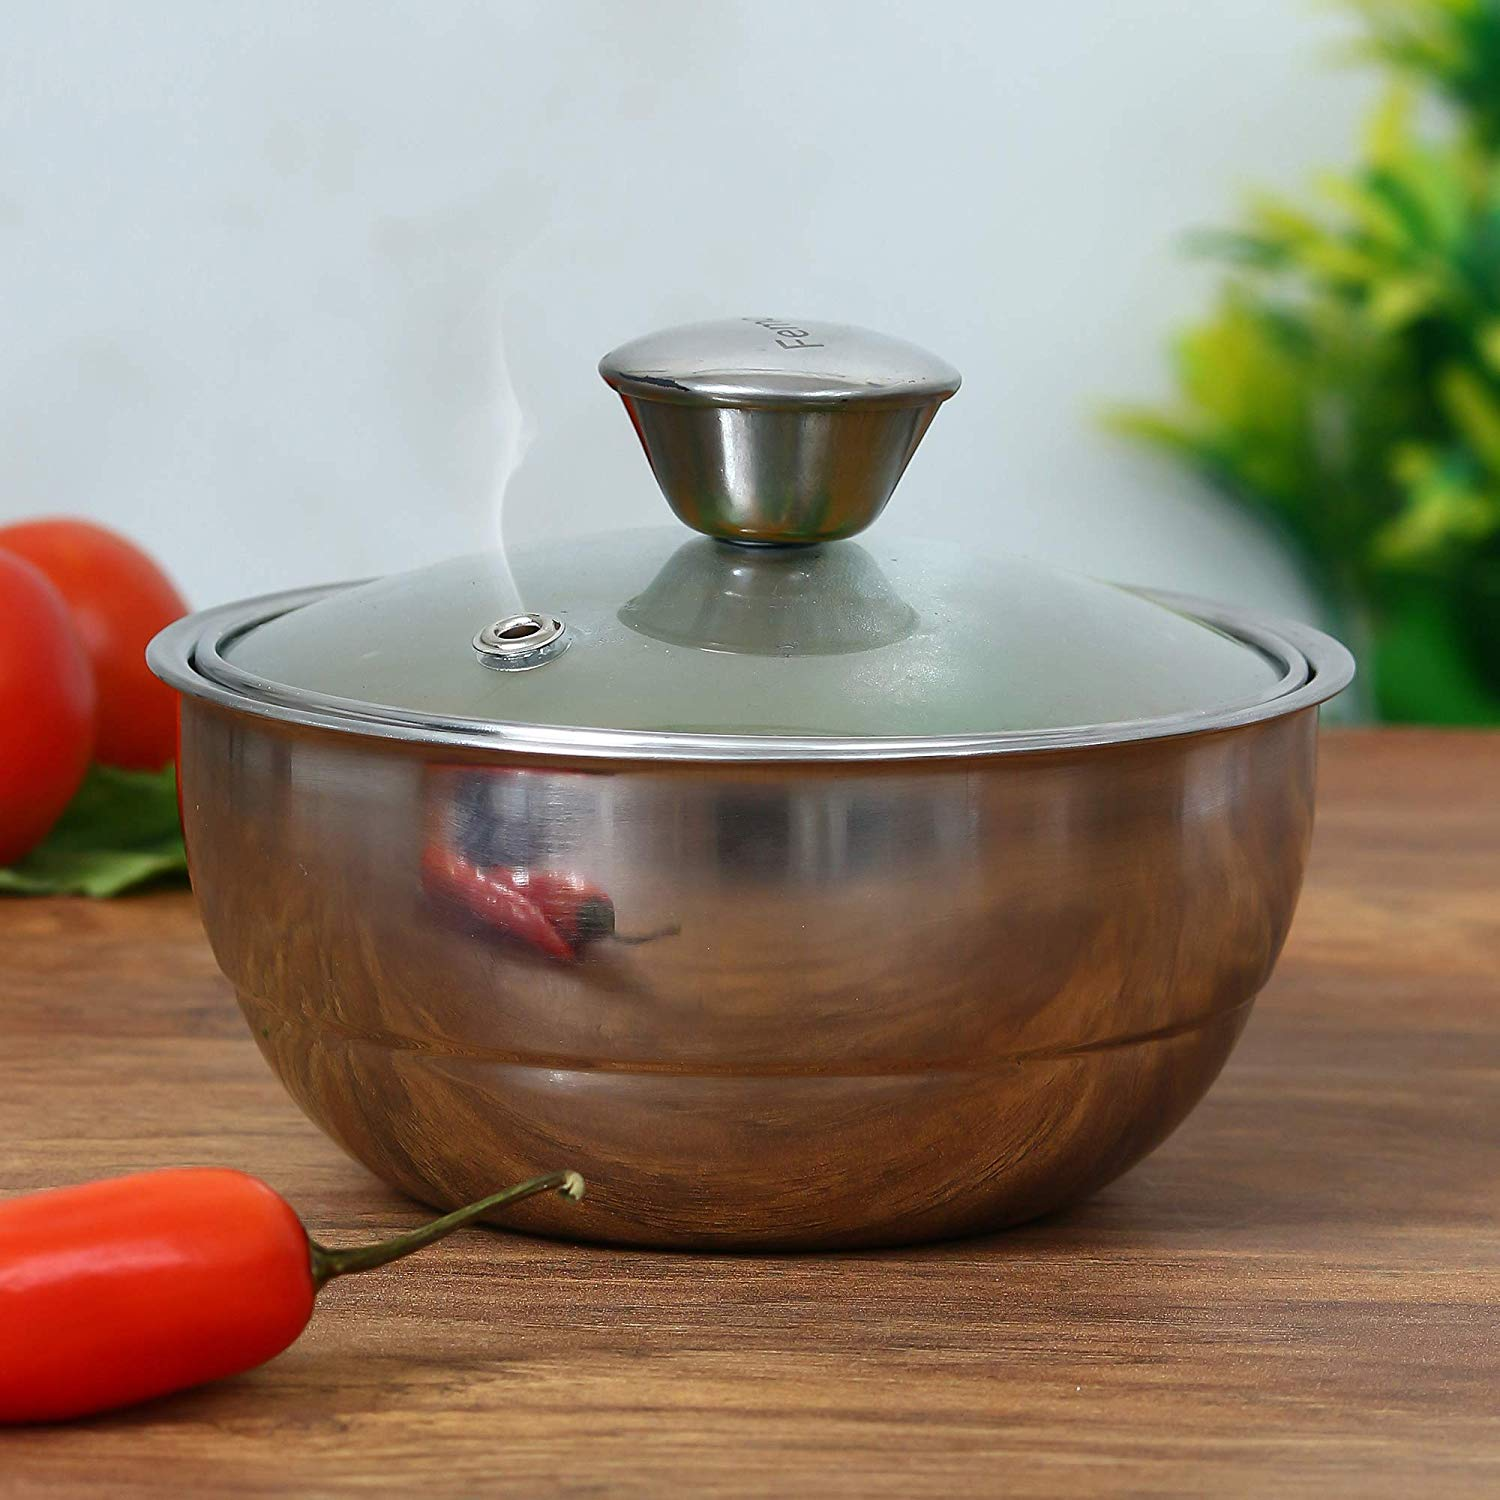 Stainless Steel Curry Server Casserole - 500ml, 900ml, Set of 2